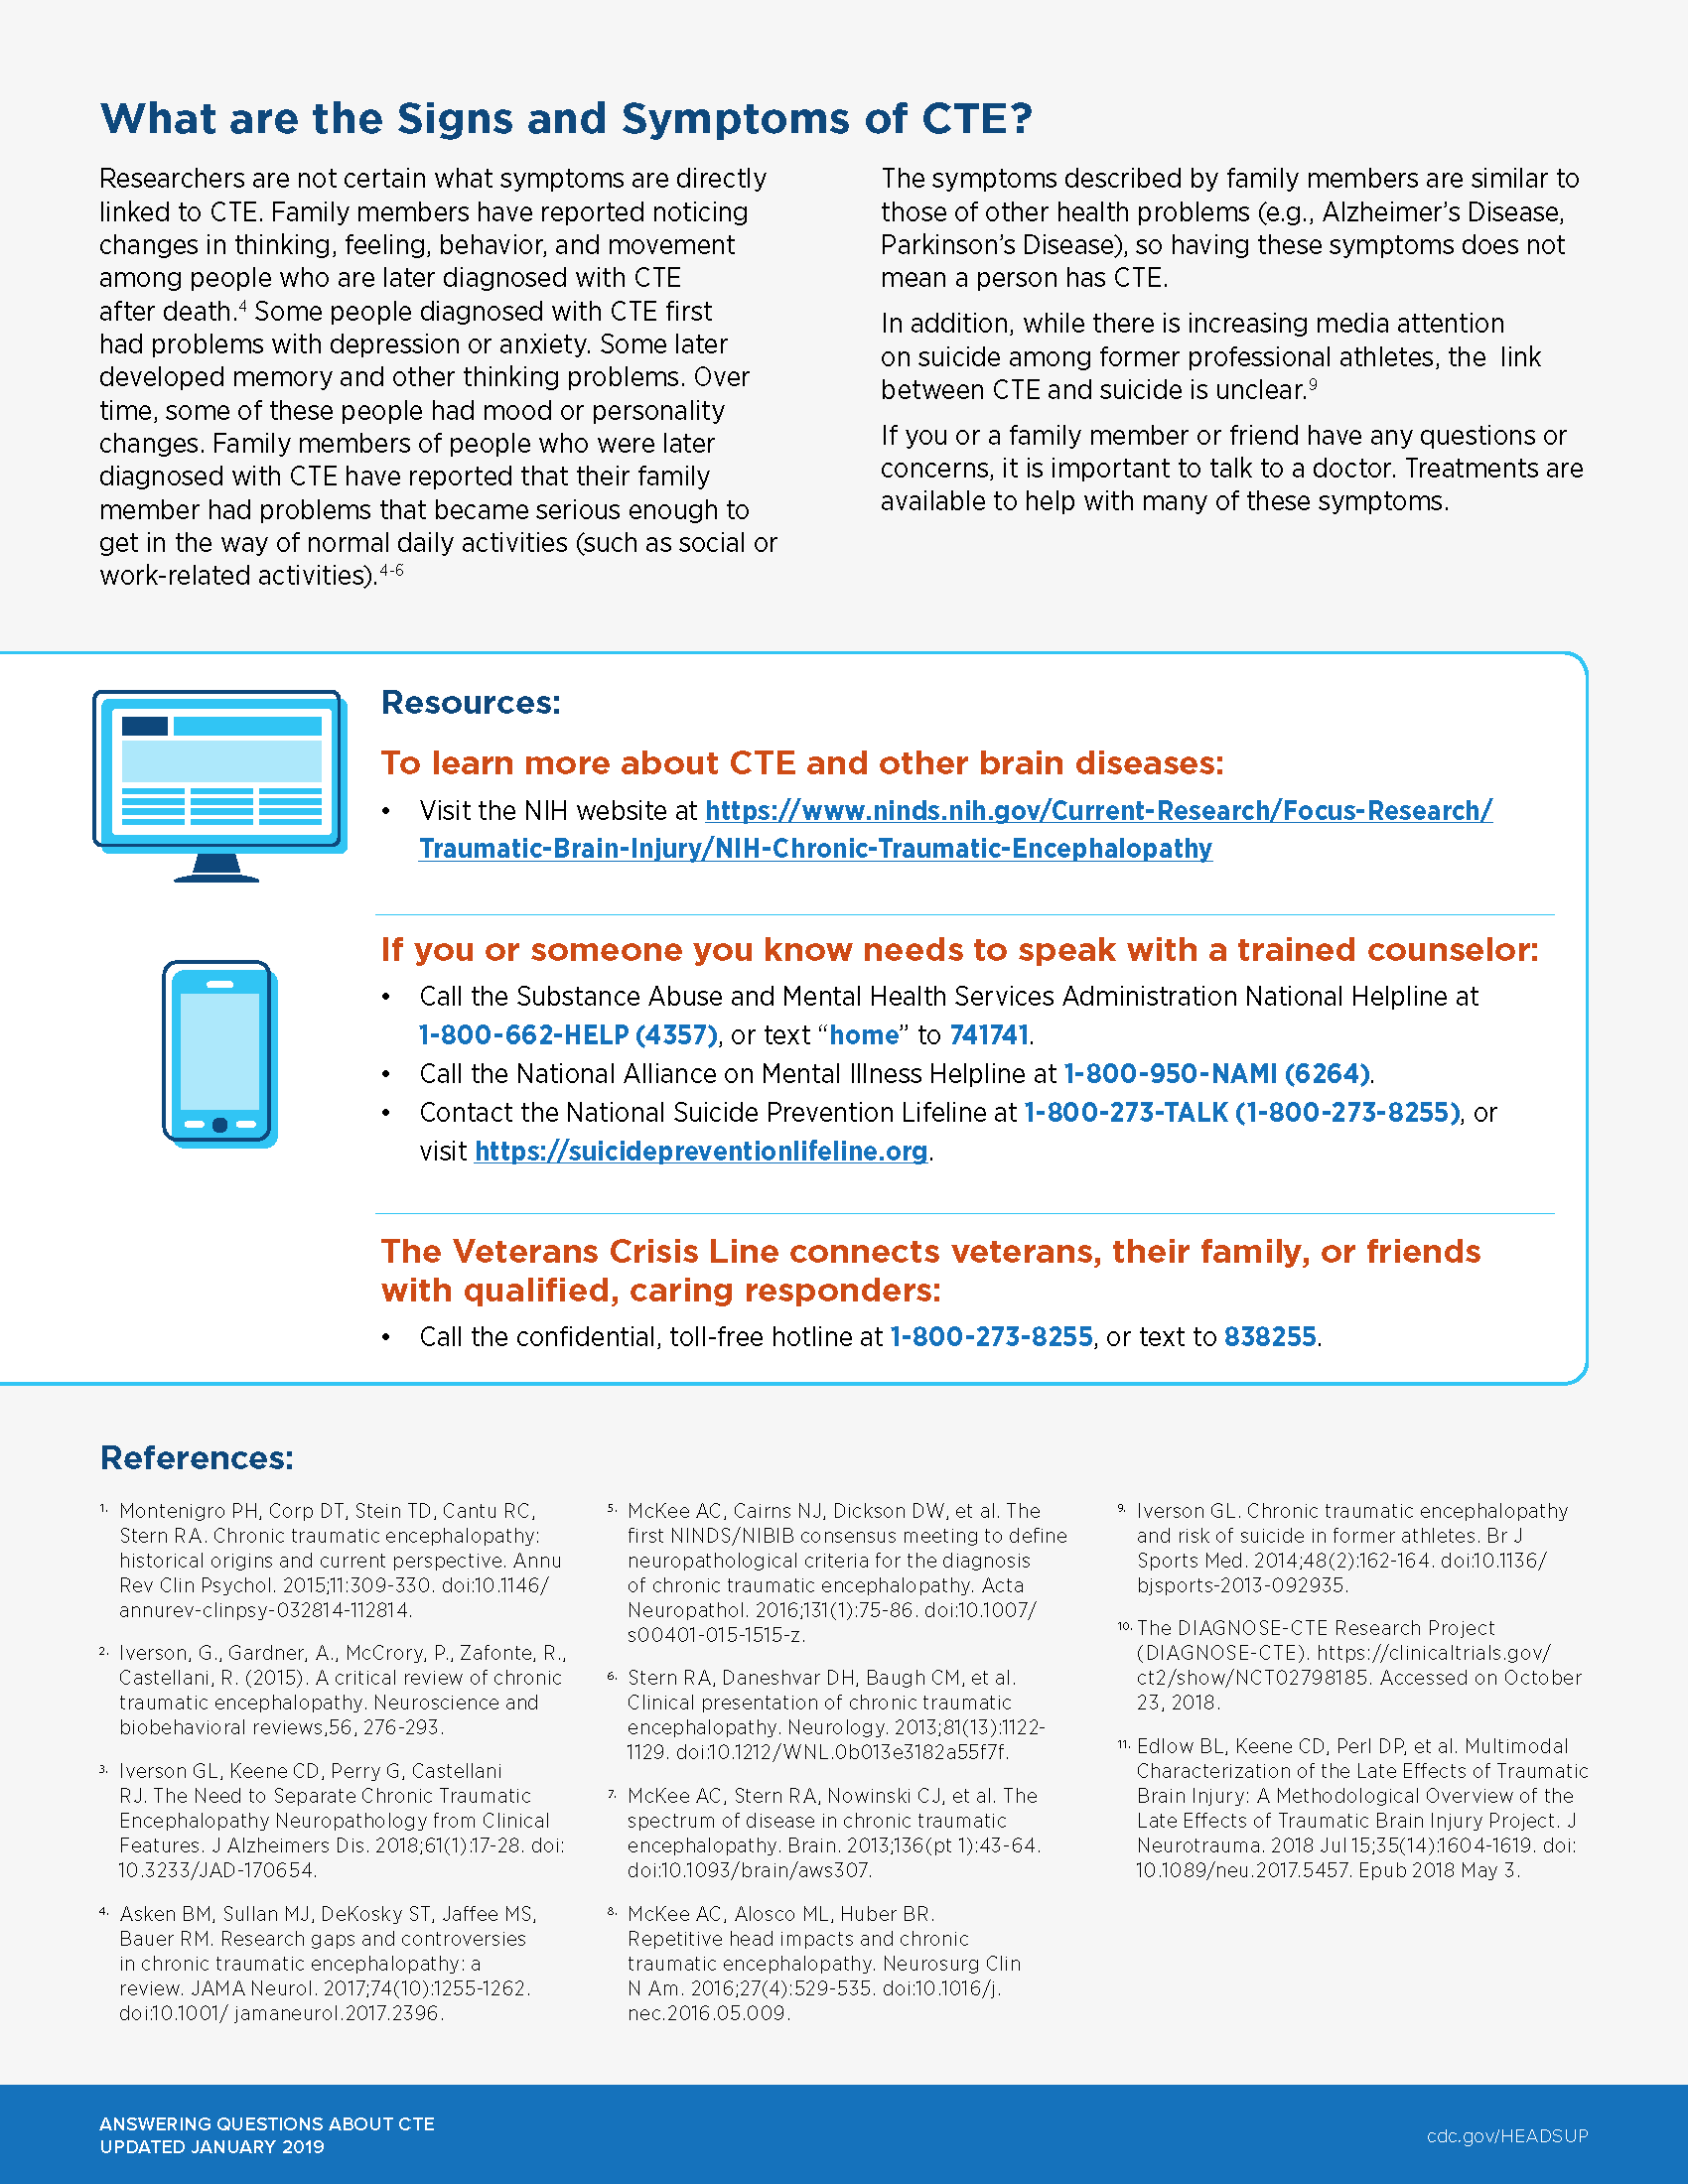 Page two of the CTE Factsheet from the CDC